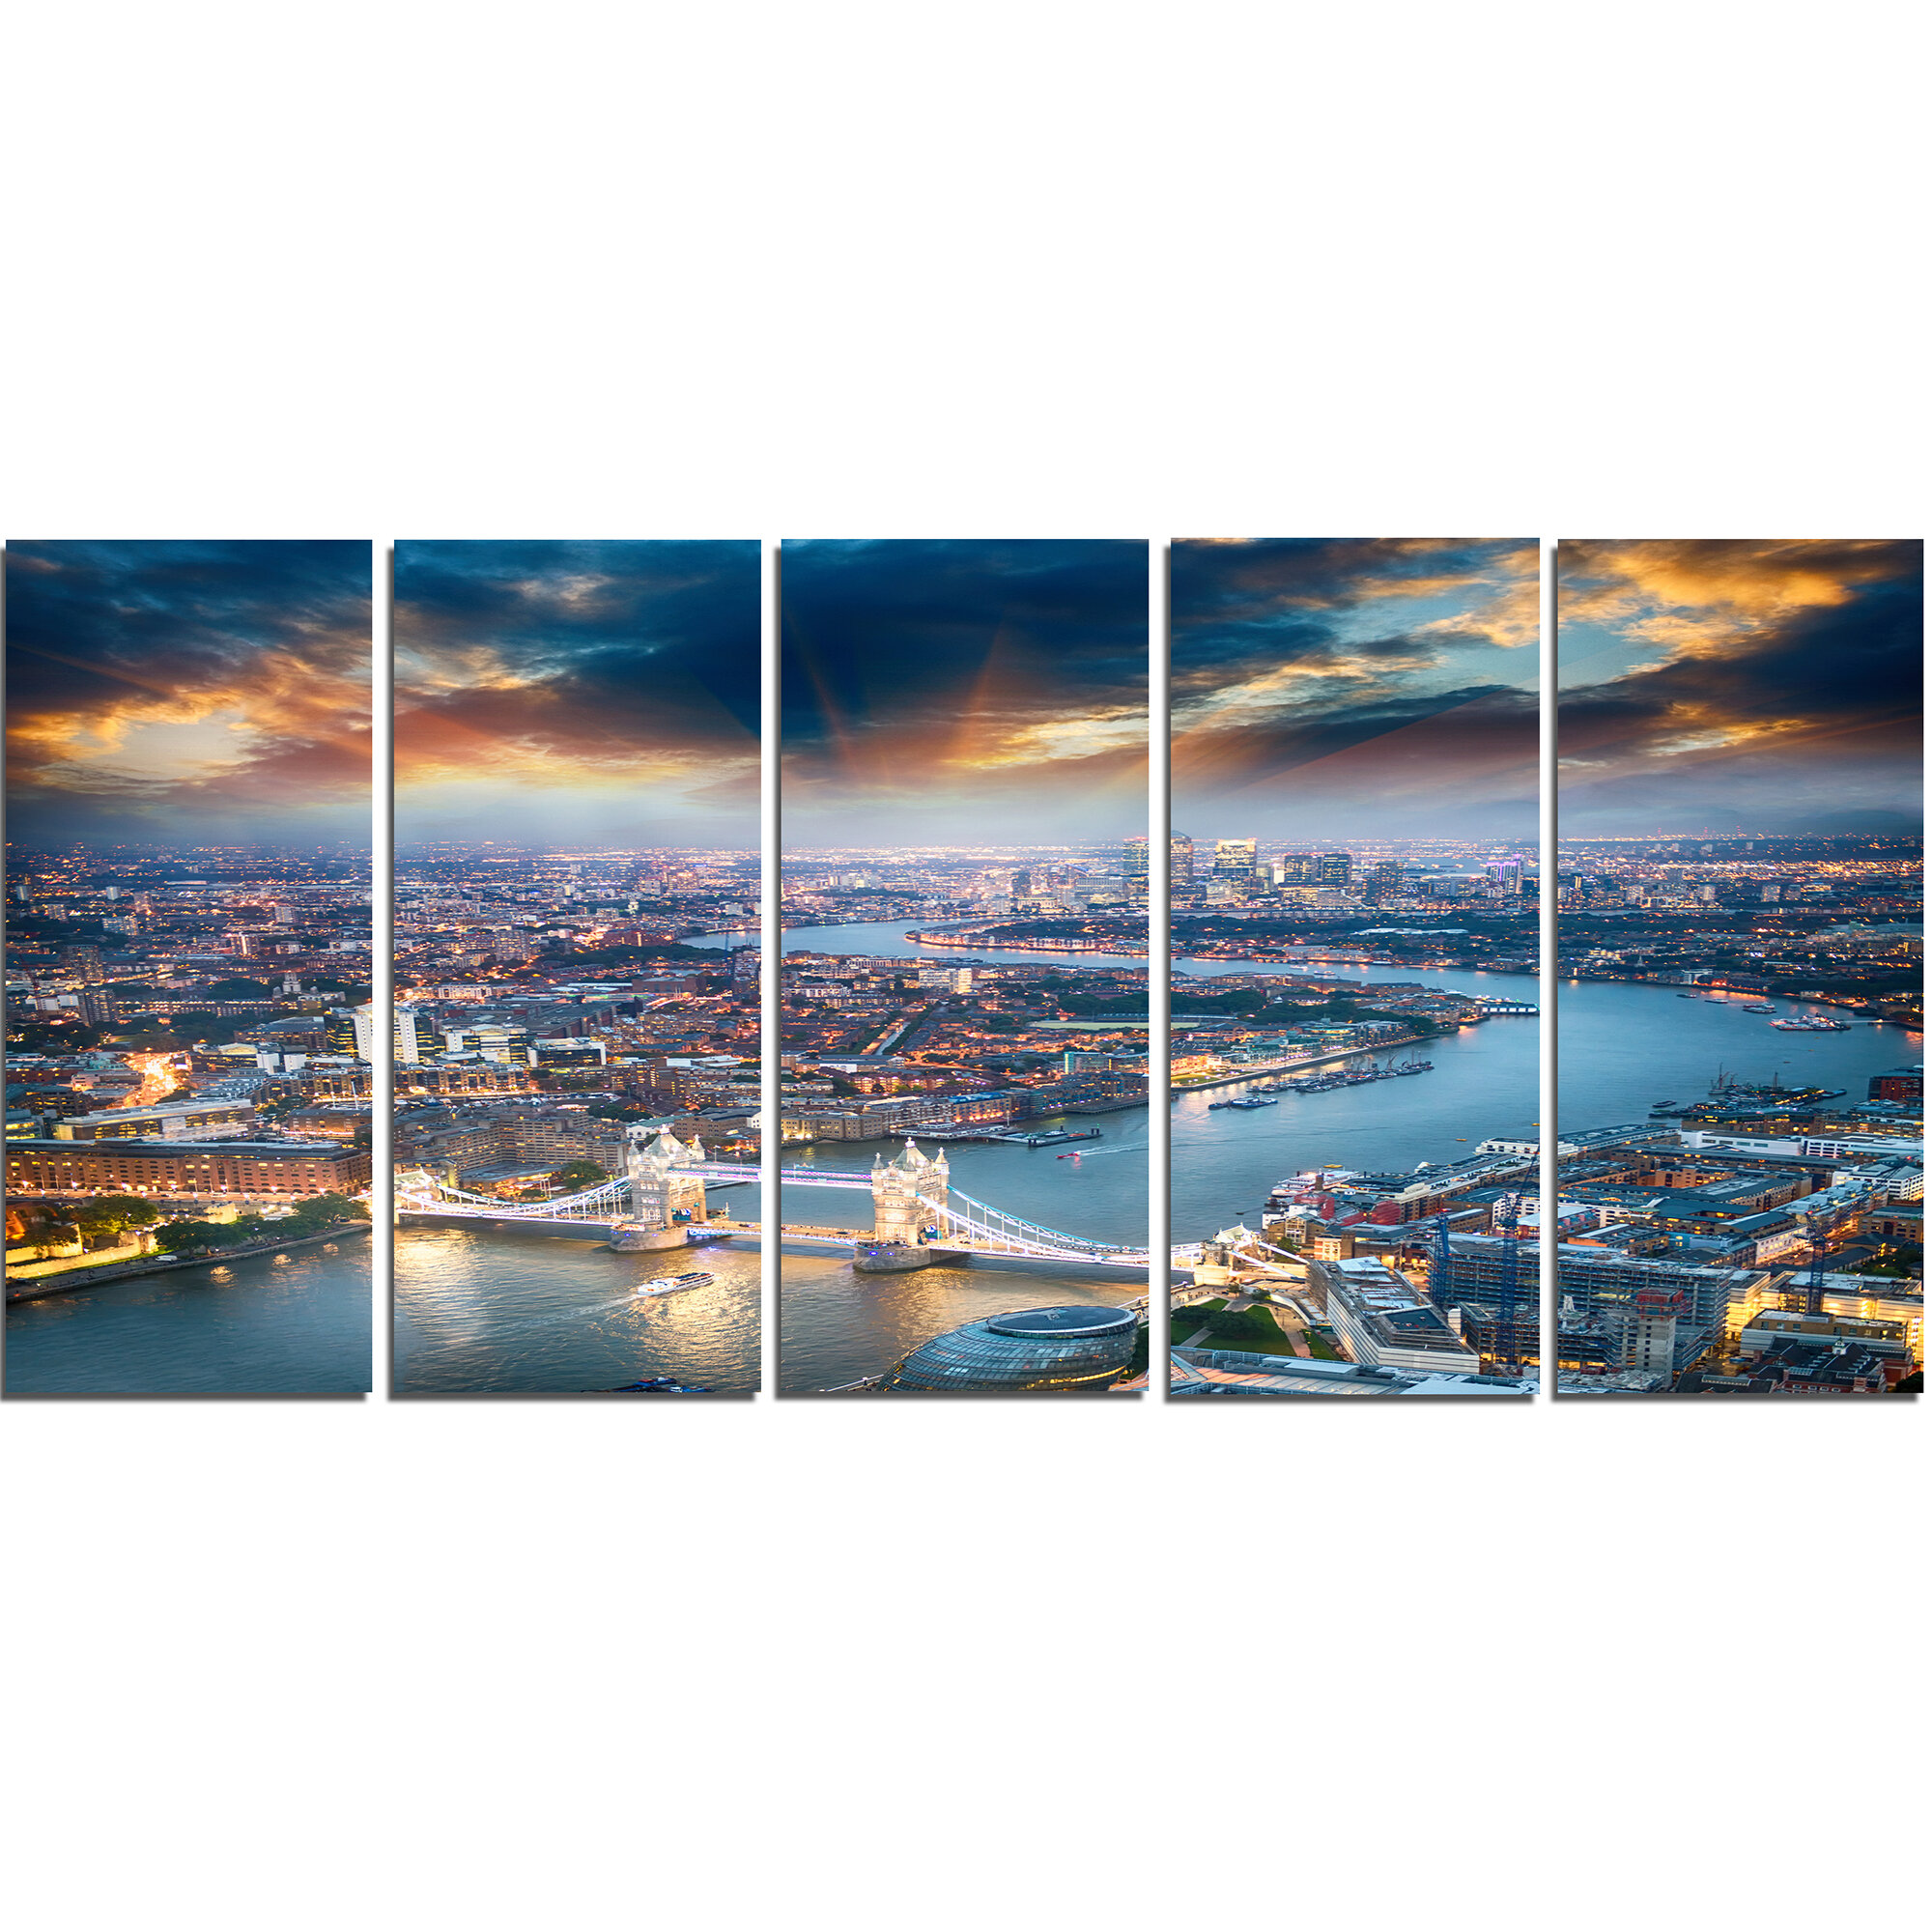 Designart Aerial View Of London At Dusk 5 Piece Photographic Print On Wrapped Canvas Set Wayfair